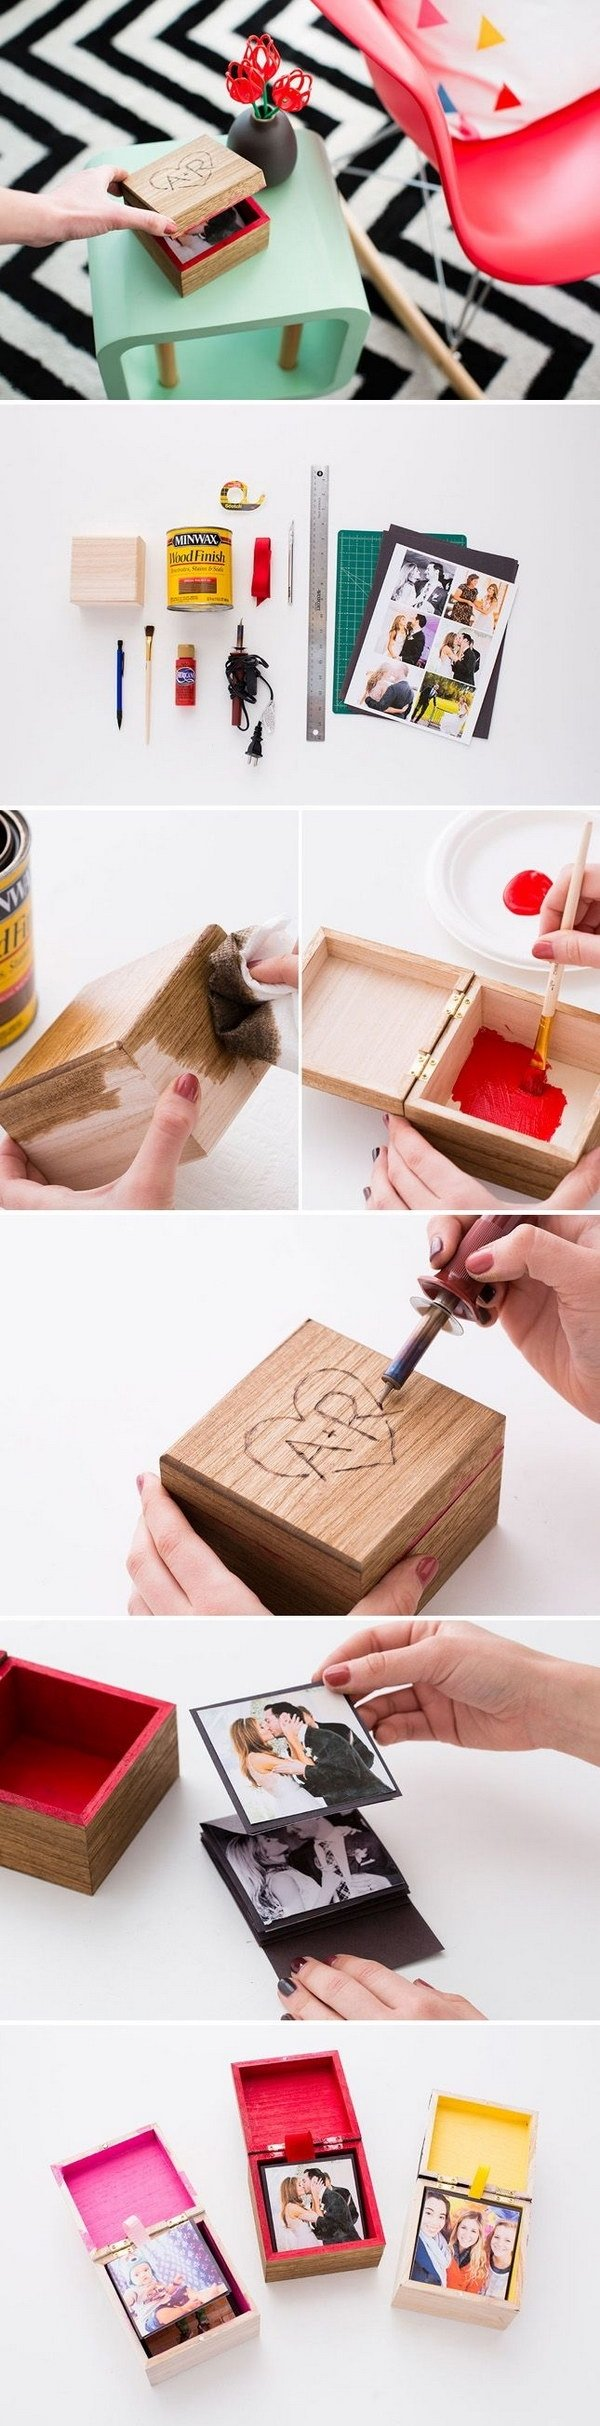 10 Unique Homemade Gift Ideas For Boyfriend 25 diy gifts for him with lots of tutorials 2017 5 2021